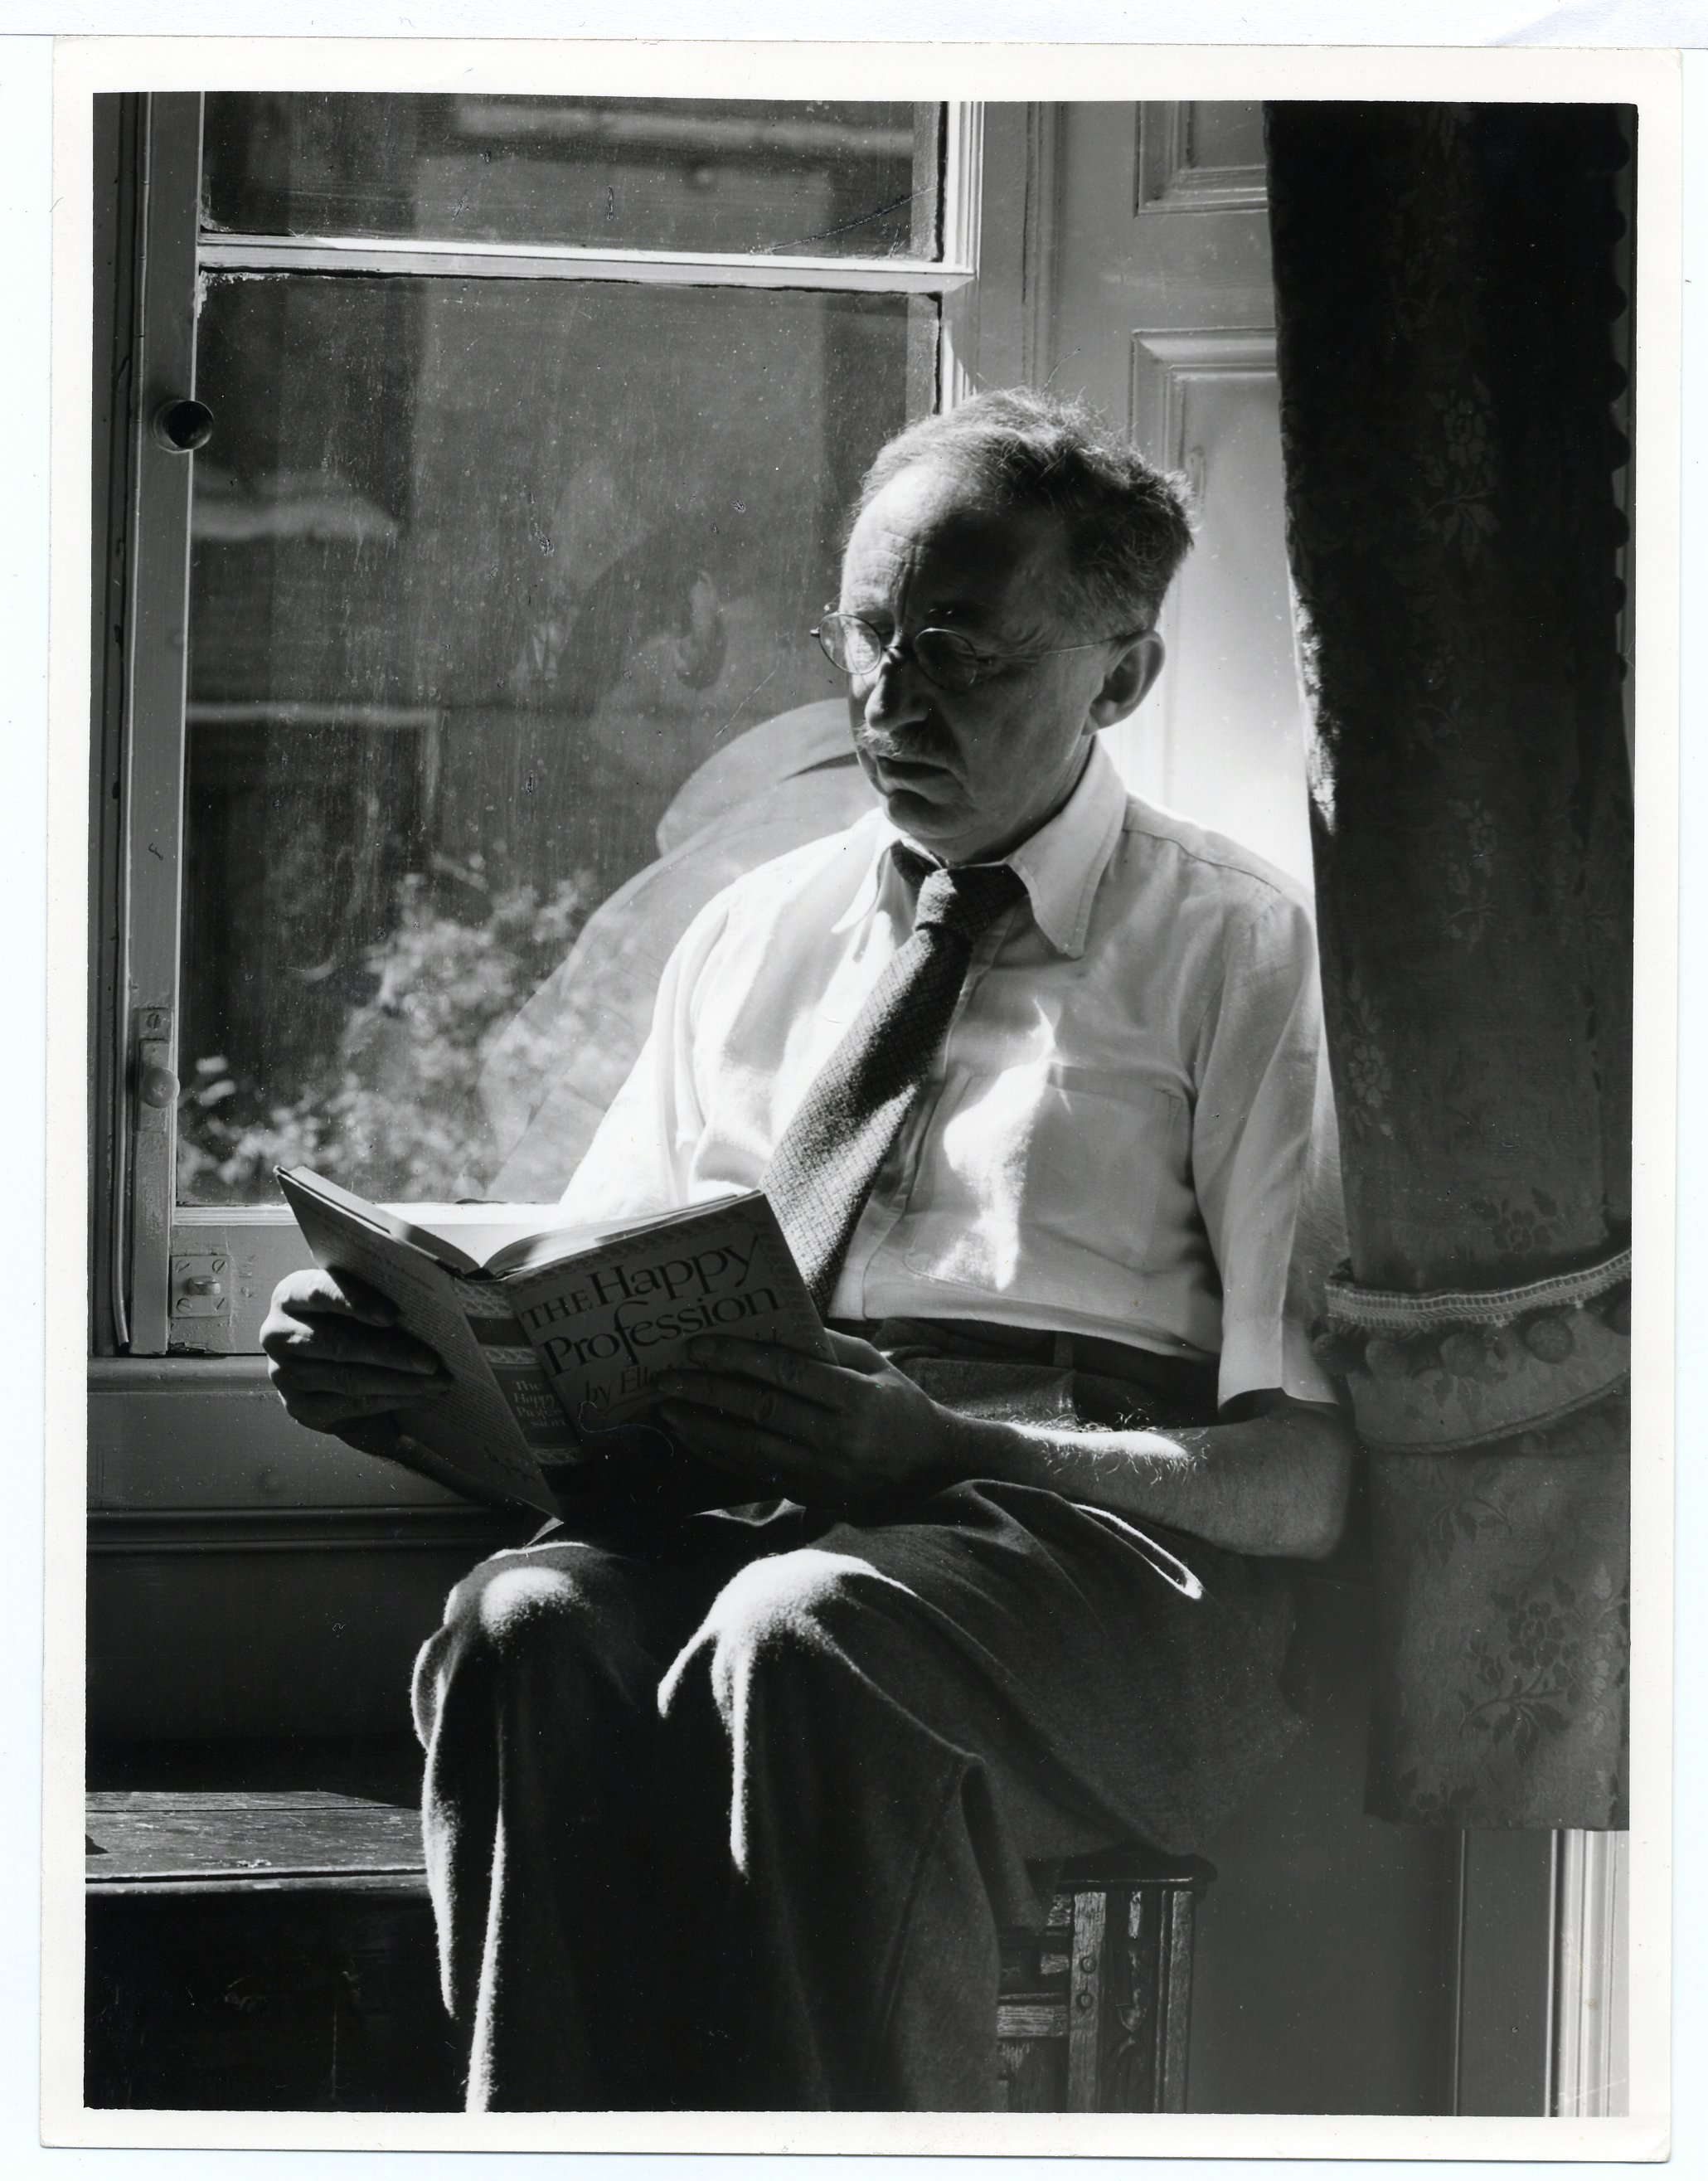 Forster in his rooms in the late 1950s (Photographer: Edward Leigh)